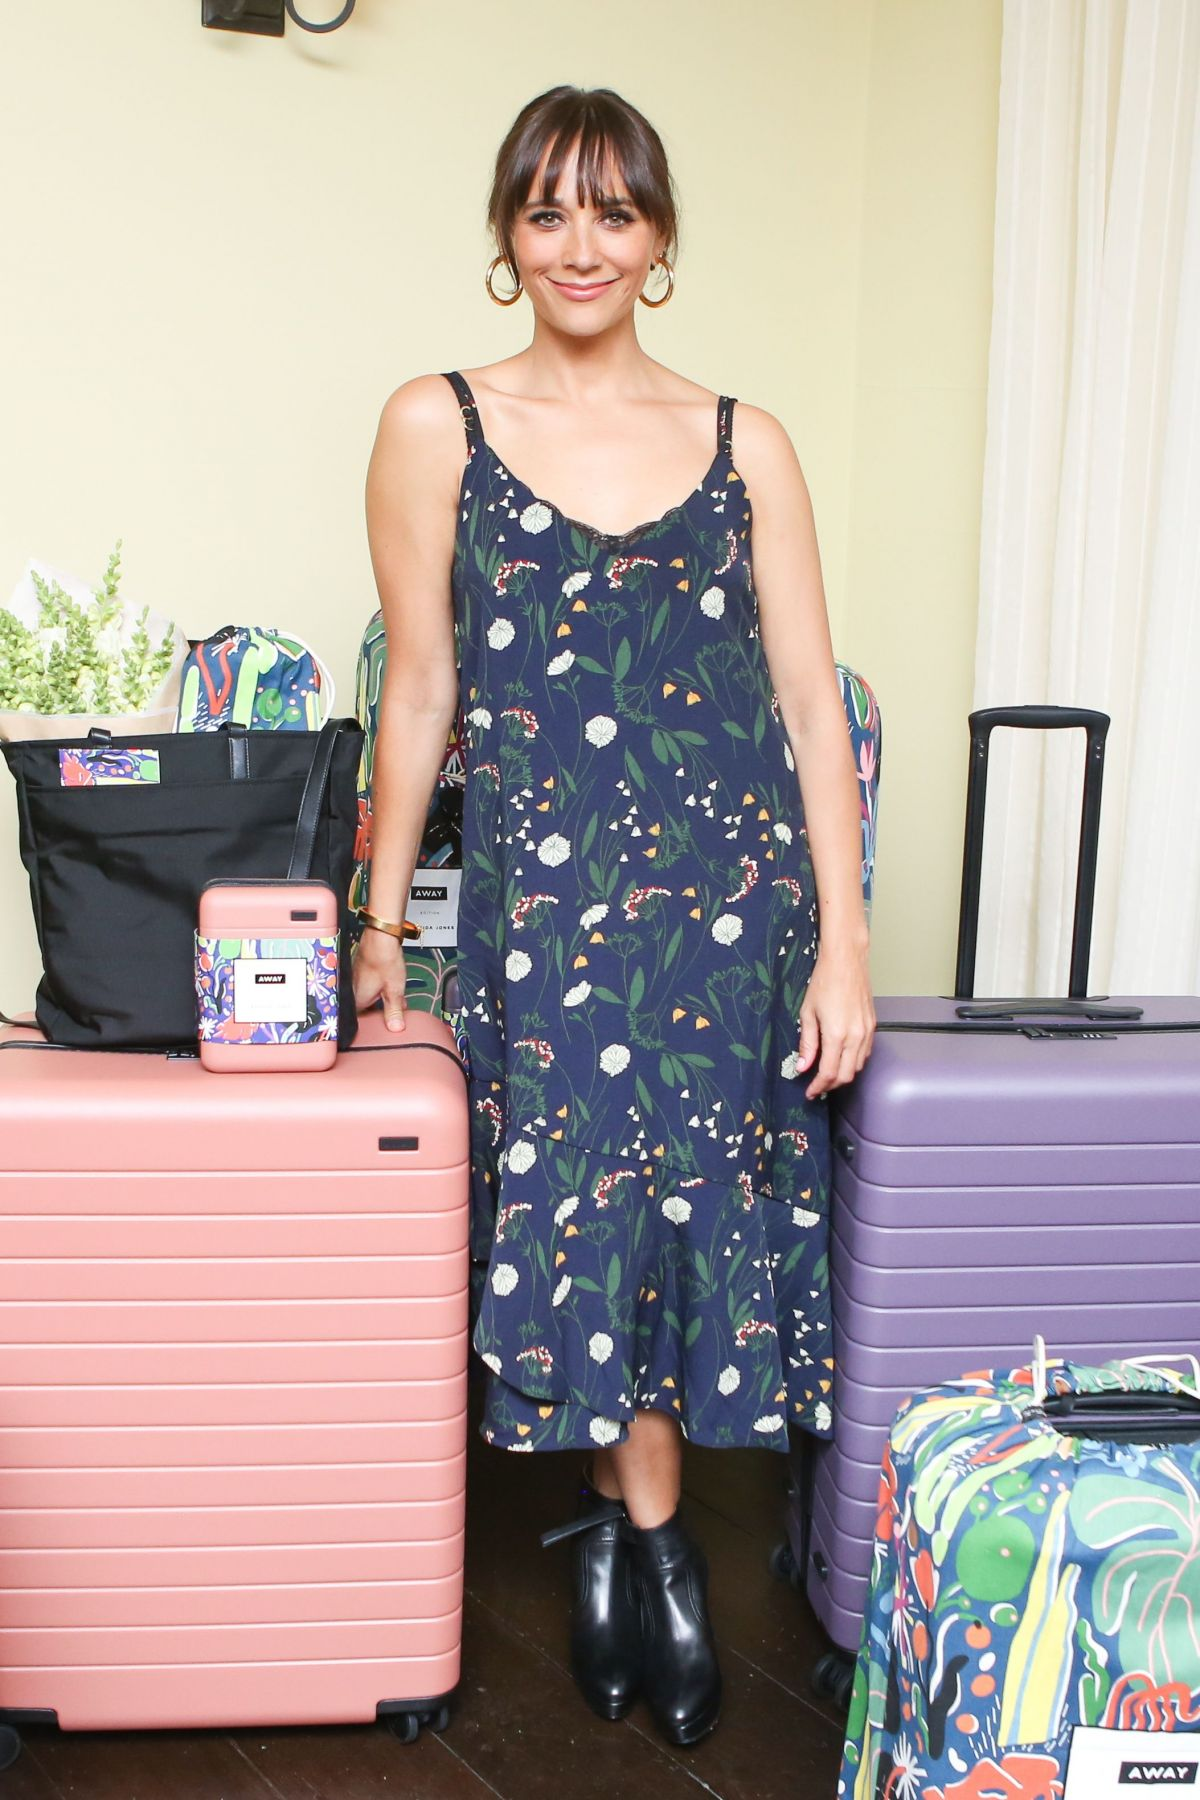 RASHIDA JONES at Launch Party for Away Luggage Collaboration in Los ANgeles 08/22/2017